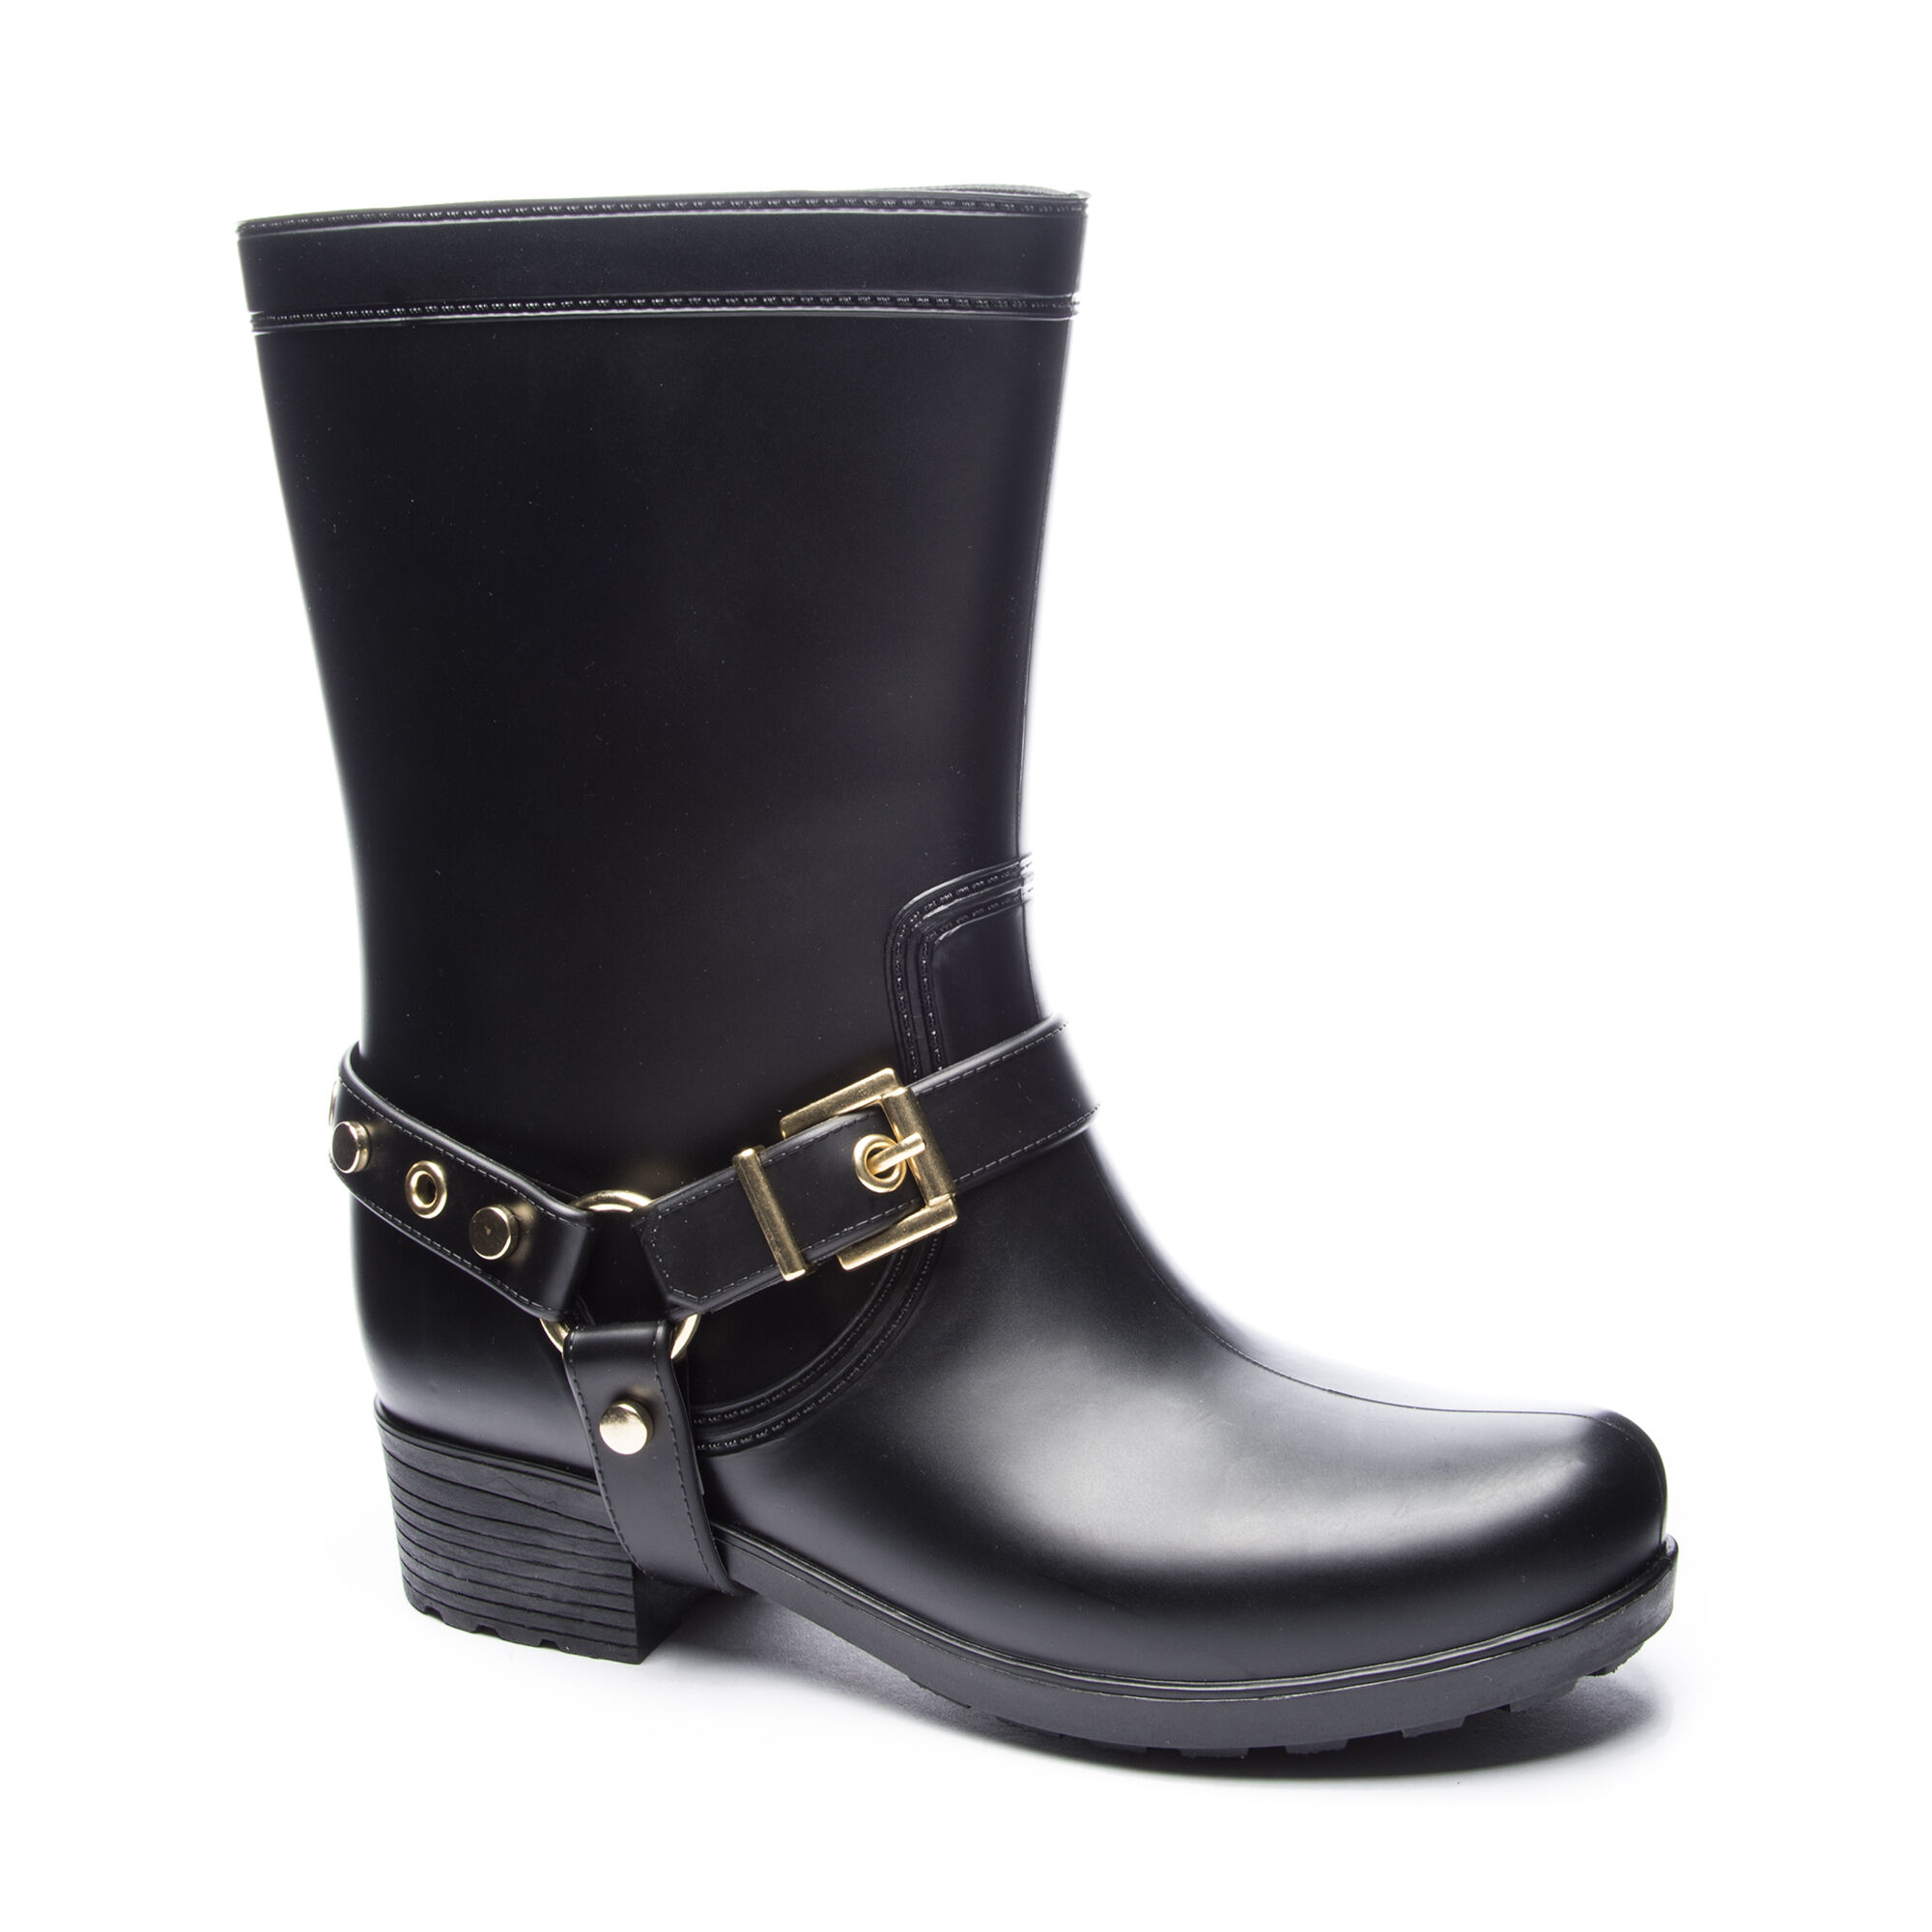 cbd4abd02d84 Women's & Ladies All Weather Rain Boots | Chinese Laundry